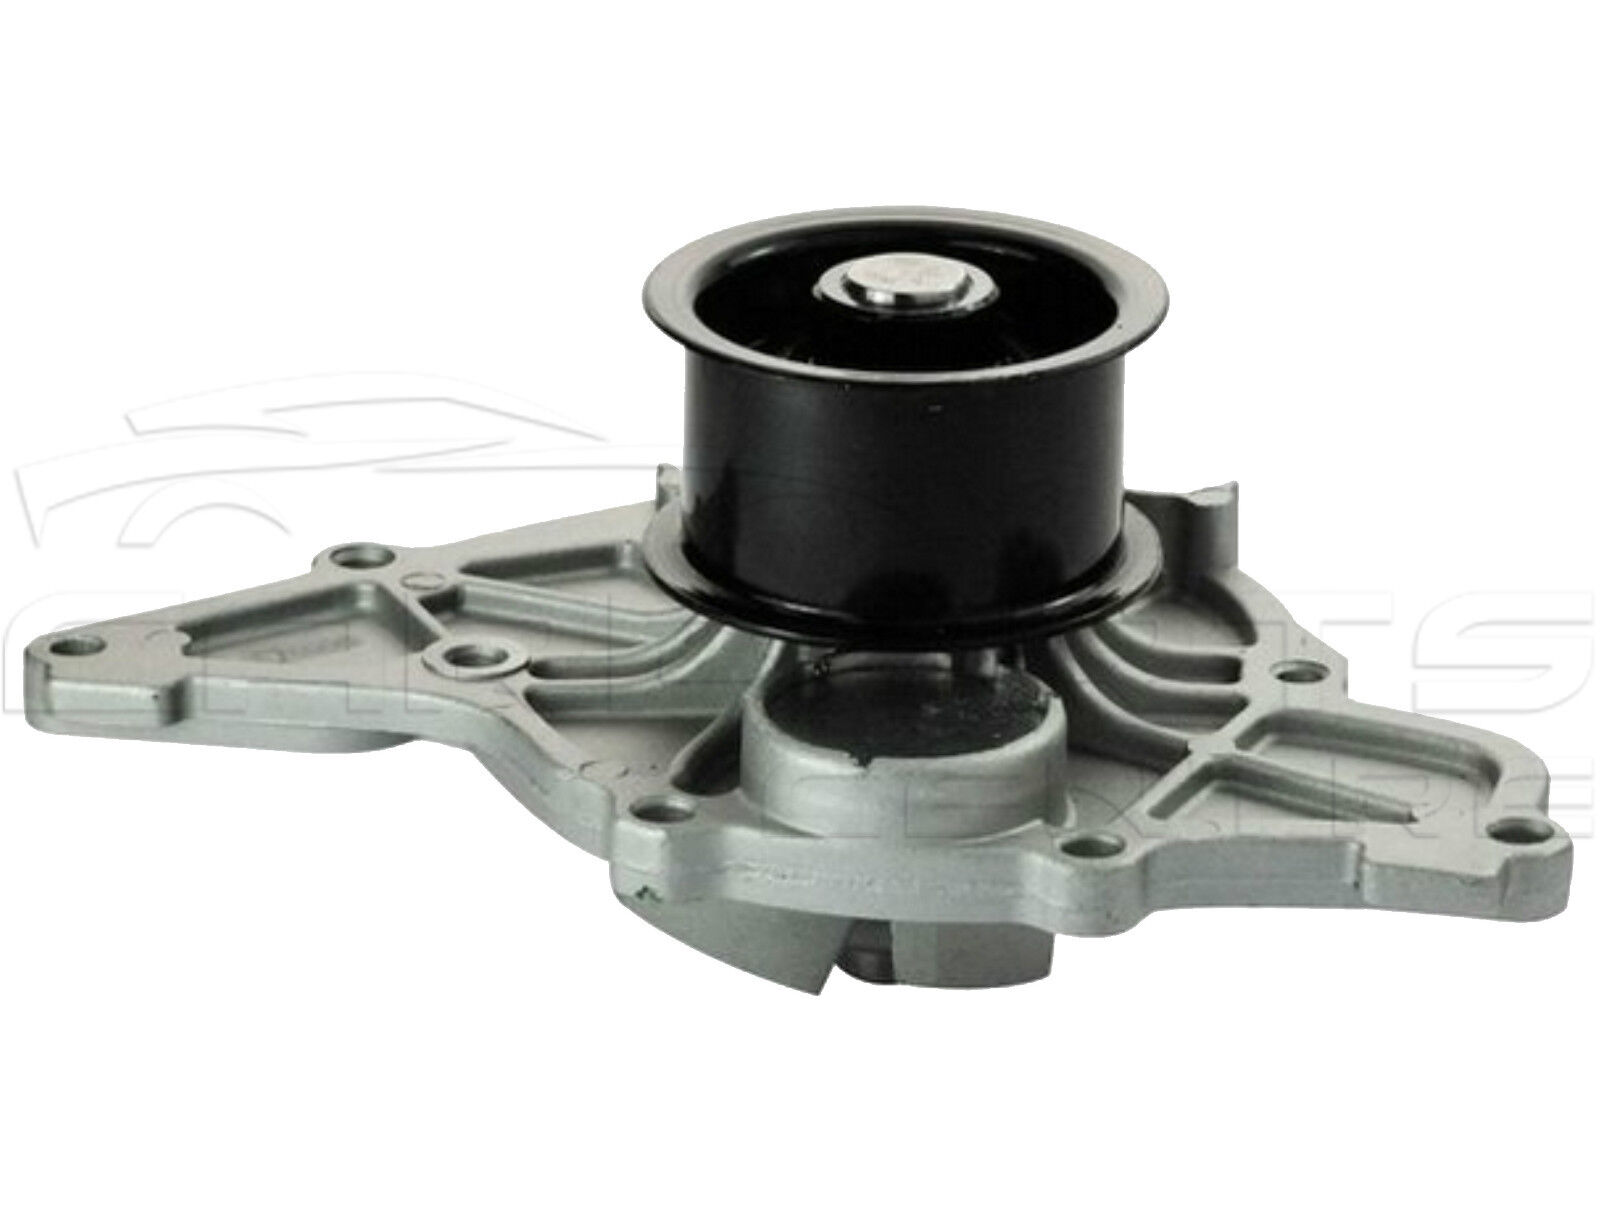 Audi A4 2000-2004 8E2 B6 8E5 Water Flange Cooling System Replacement Part Rear